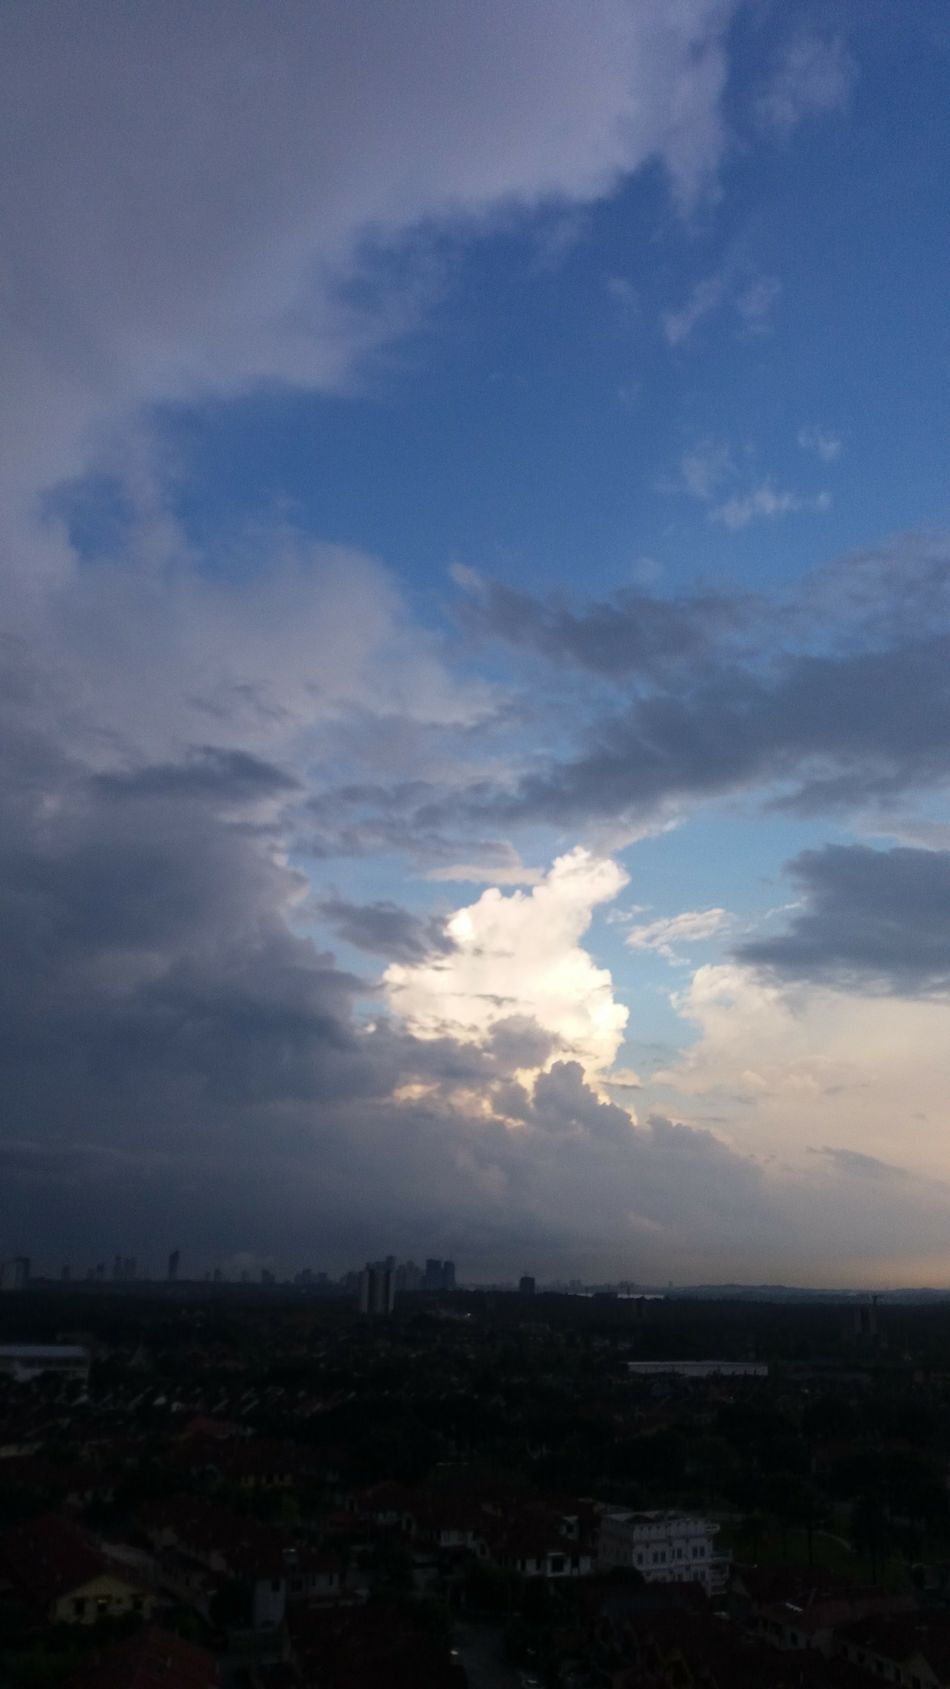 Storm Clearing _02 Architecture Beauty In Nature Building Exterior City Cityscape Cloud - Sky Day Landscape Nature No People Outdoors Scenics Sky Tranquility